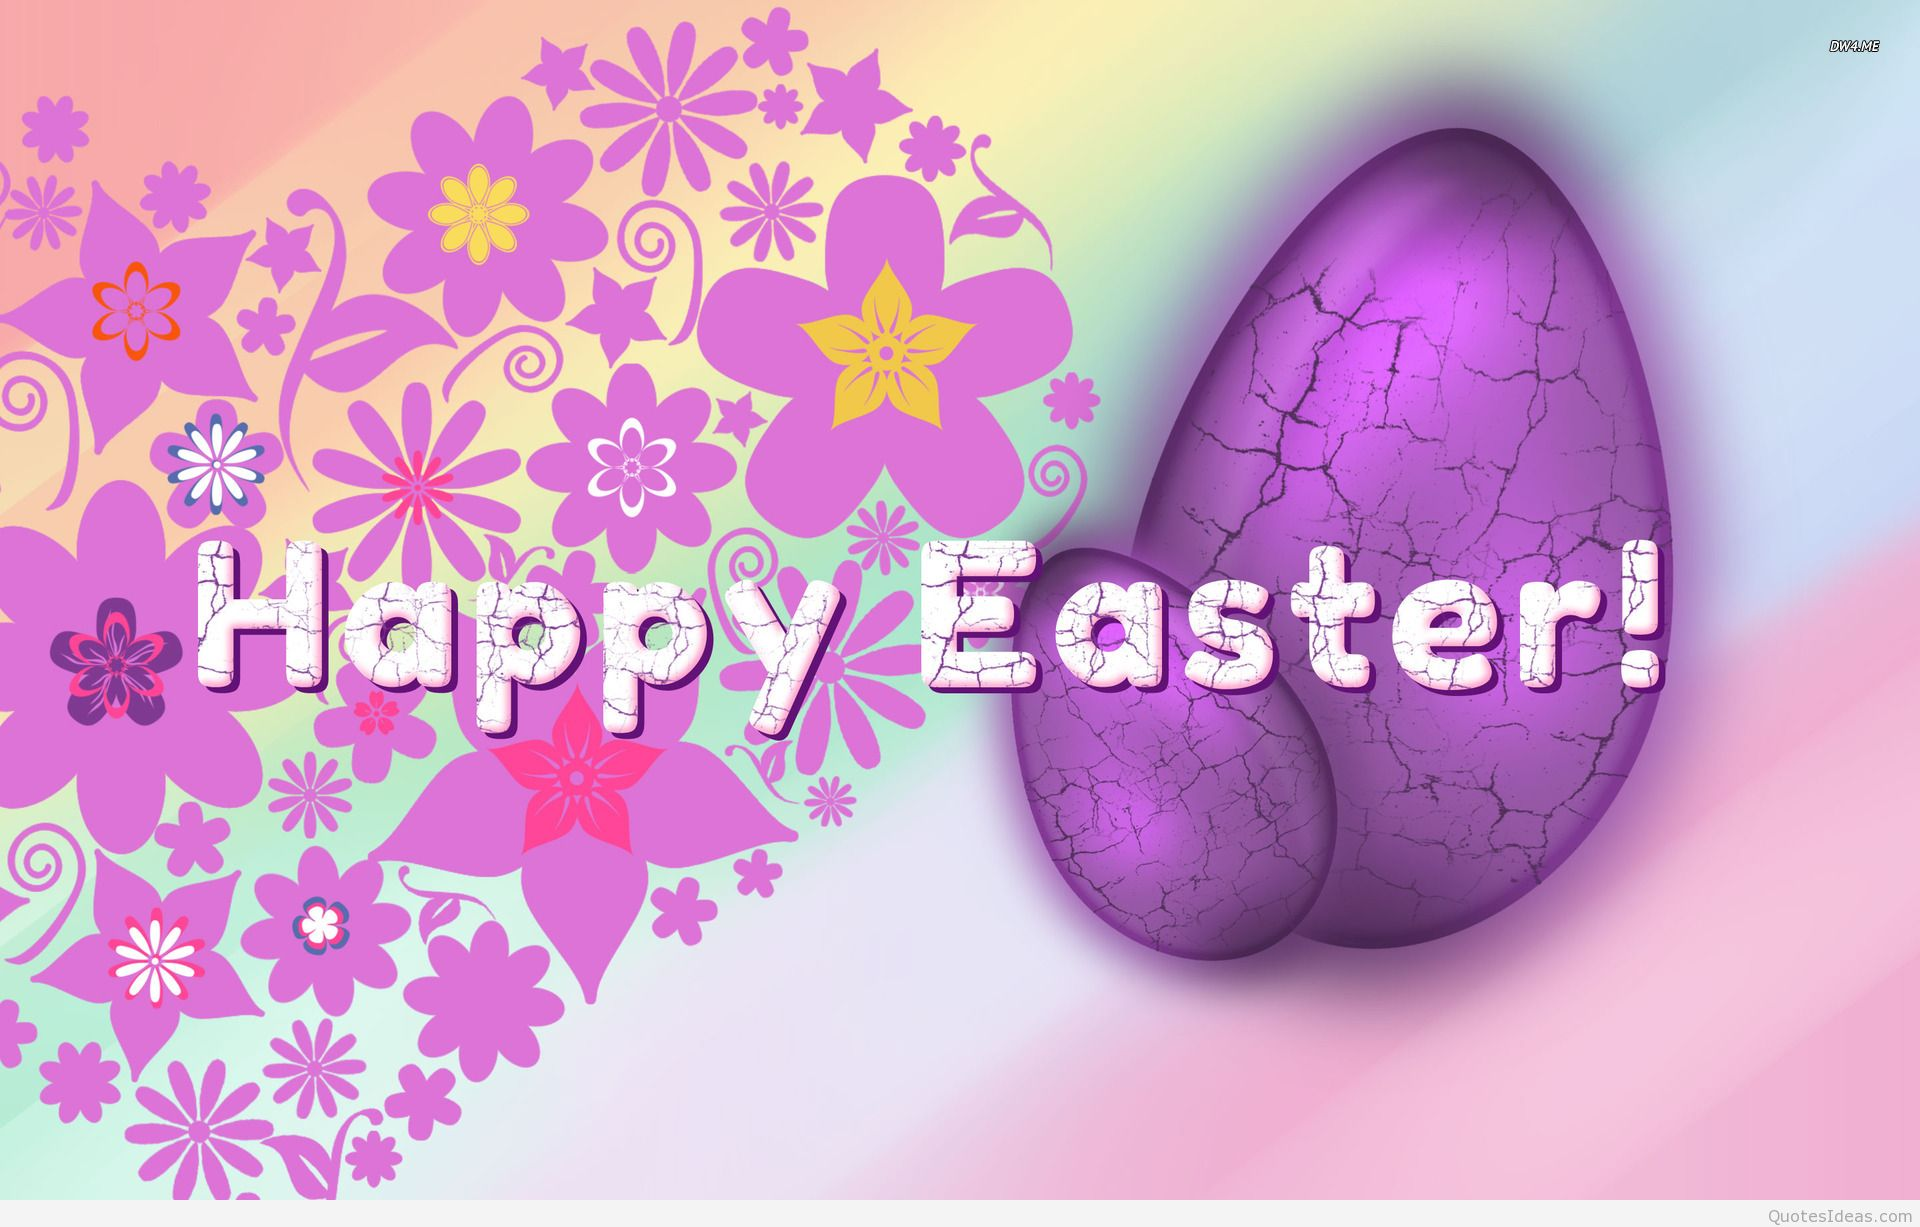 Happy Easter wallpapers and quotes 2015 2016 1920x1227